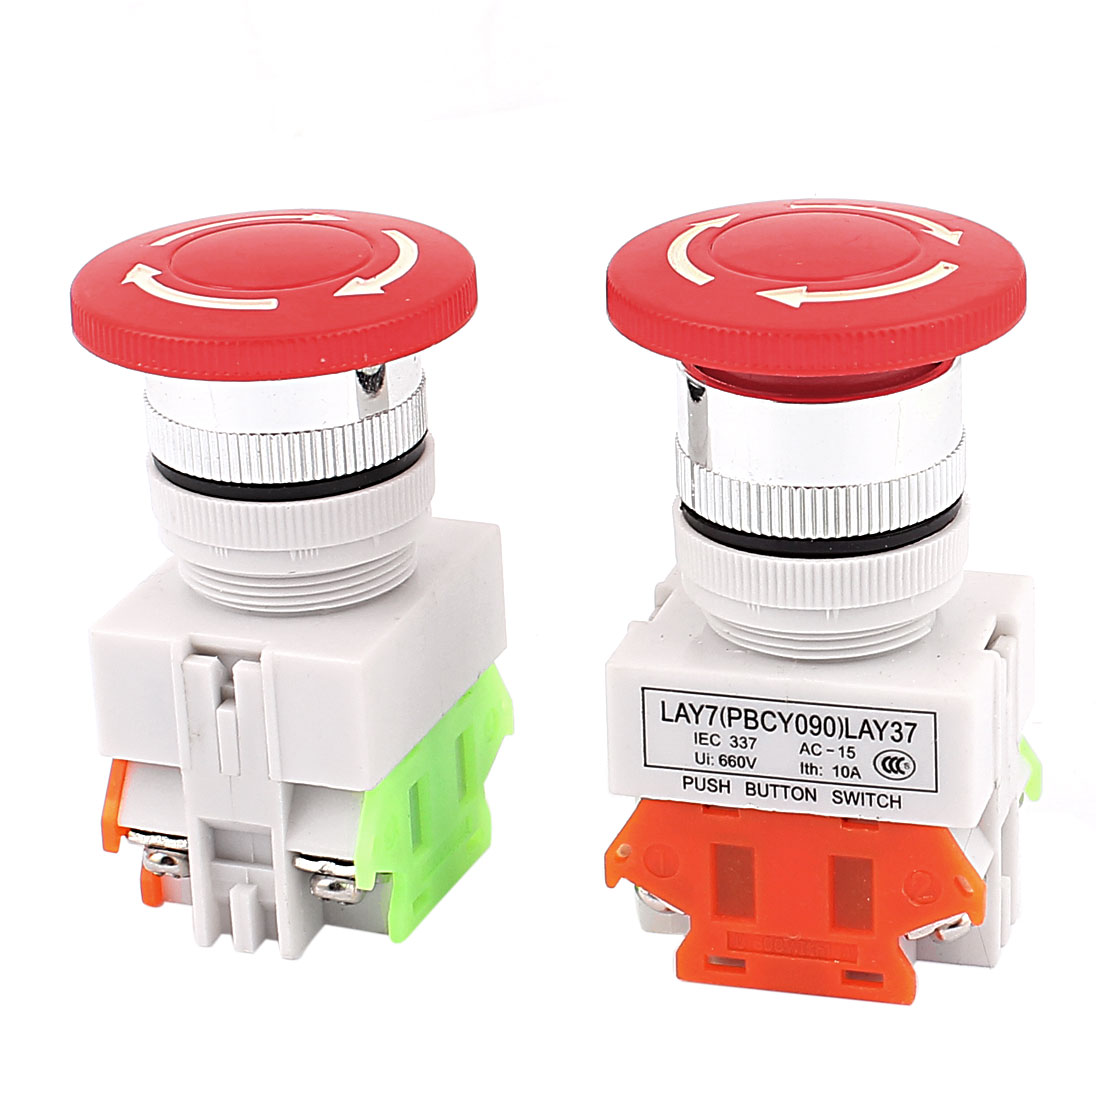 2pcs NO/NC 4 Screw Terminals Mushroom Emergency Stop Push Button Switch